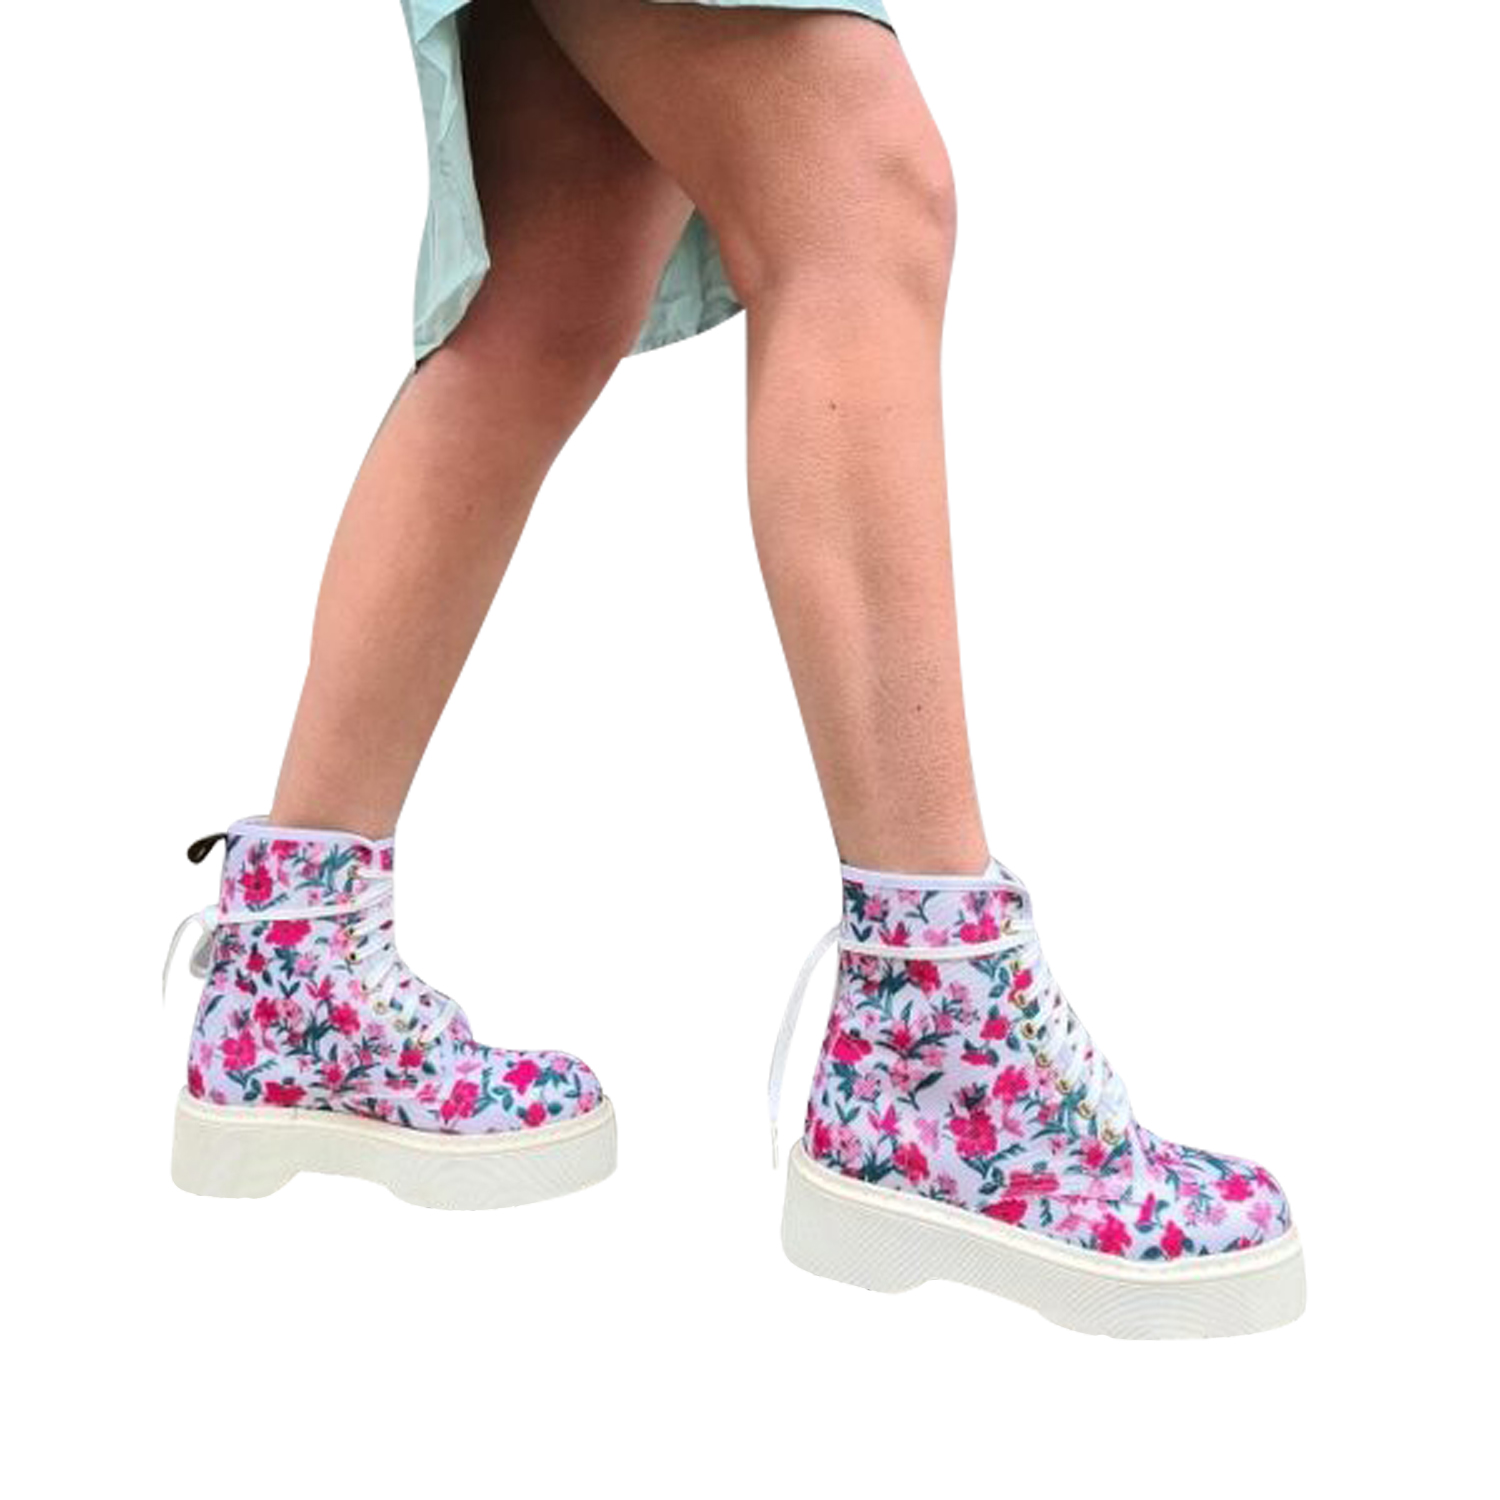 JAMMERS LONDON OXFORD FIORE ROSA